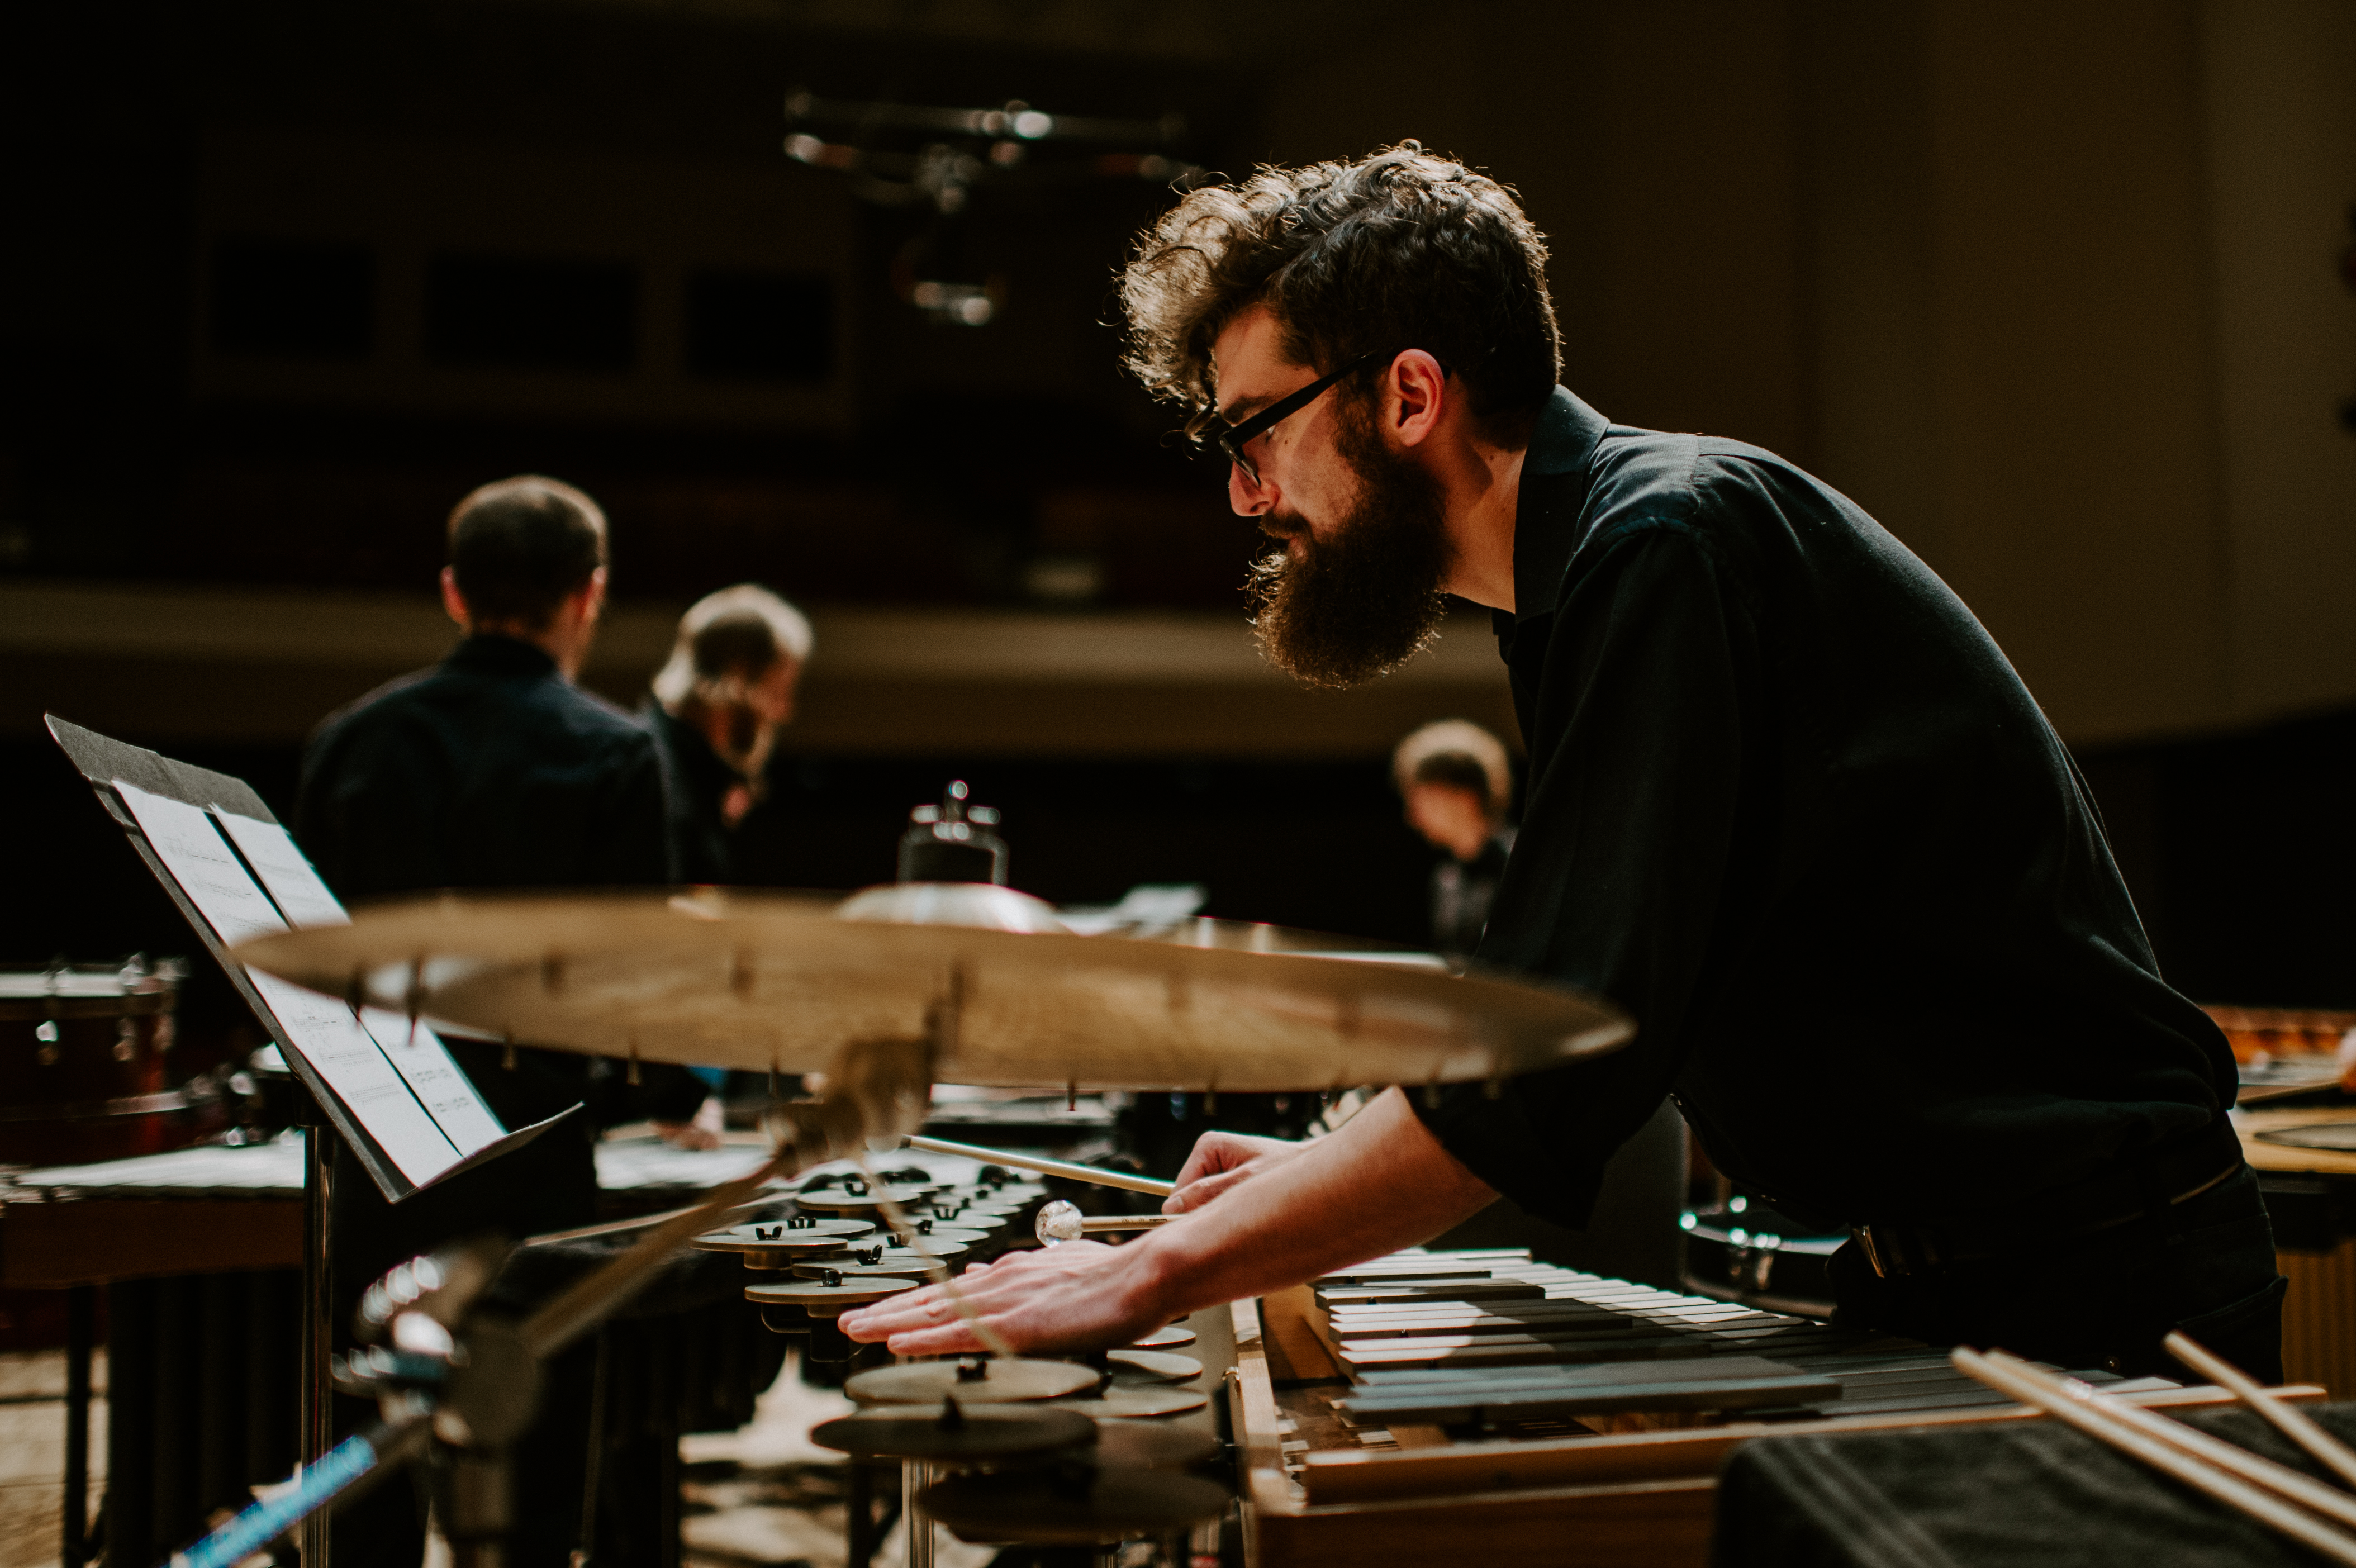 Percussionist playing crotales